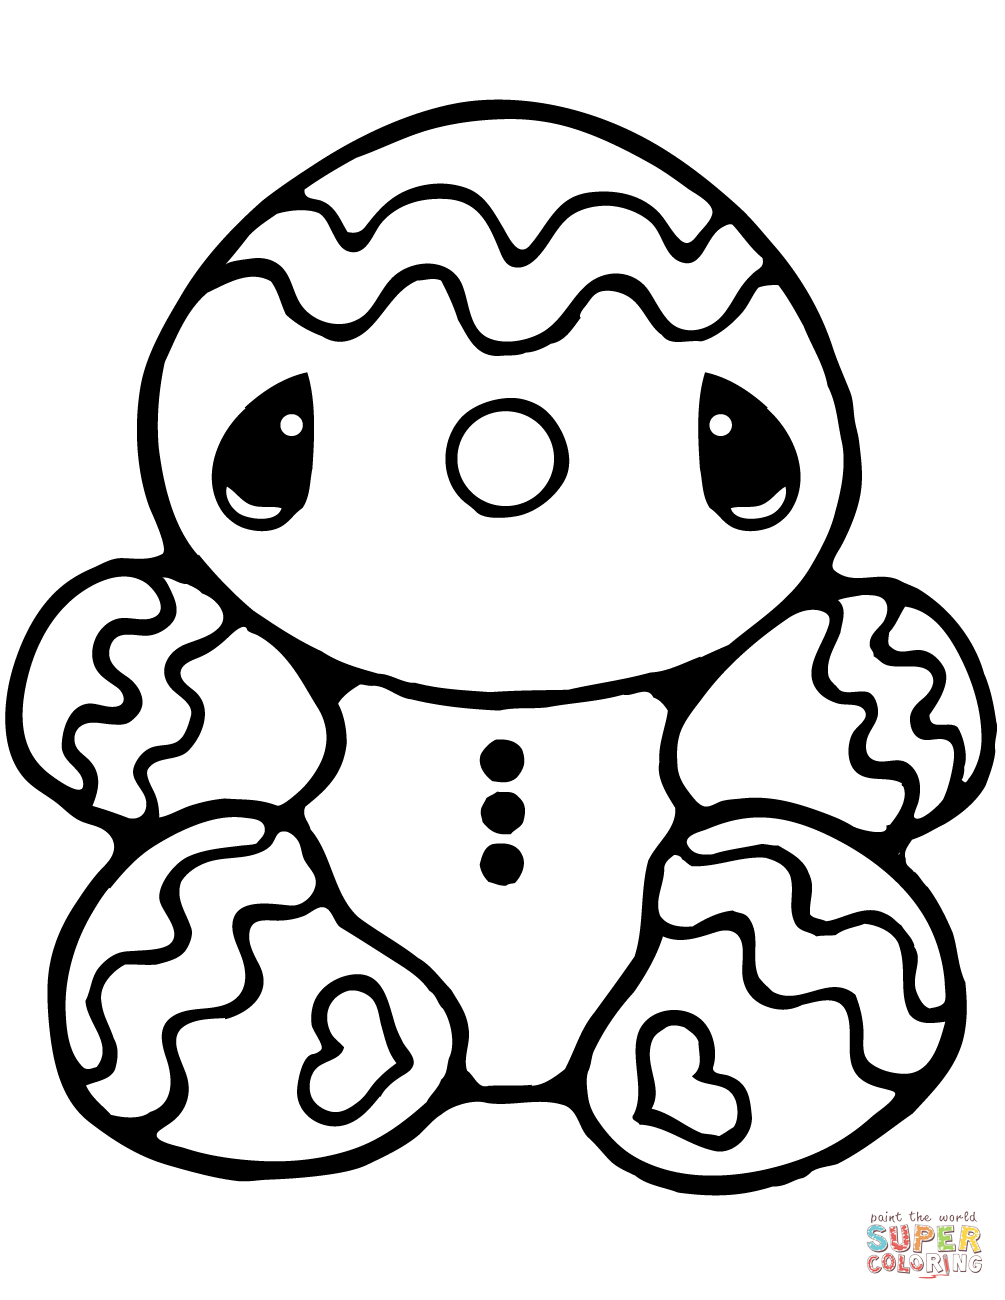 Christmas Gingerbread House Printables.Ginger Bread Man Drawing At Getdrawings Com Free For